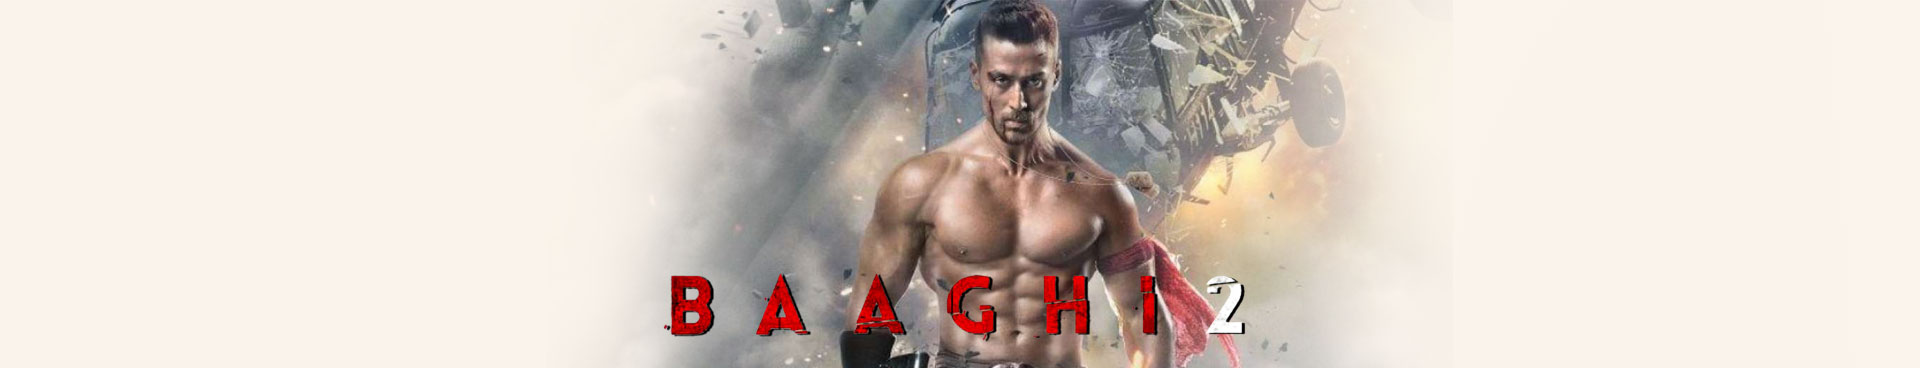 BAAGHI 2 (Hindi)